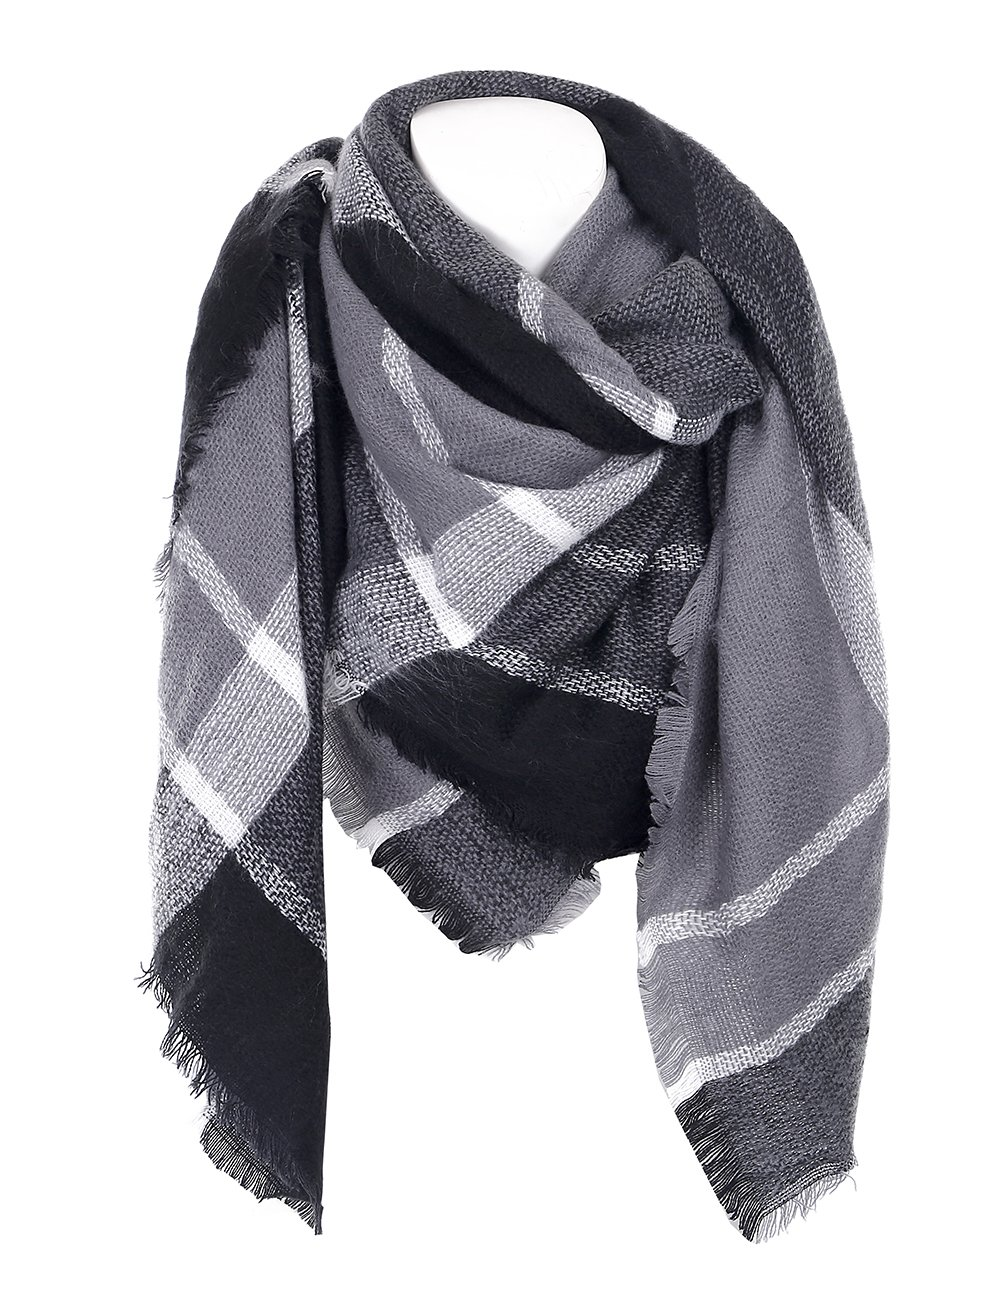 Cozy Checked Plaid Blanket Scarf - Soul Young Tartan Stylish Cape Wrap Shawl for Women and Men(One Size,Black)